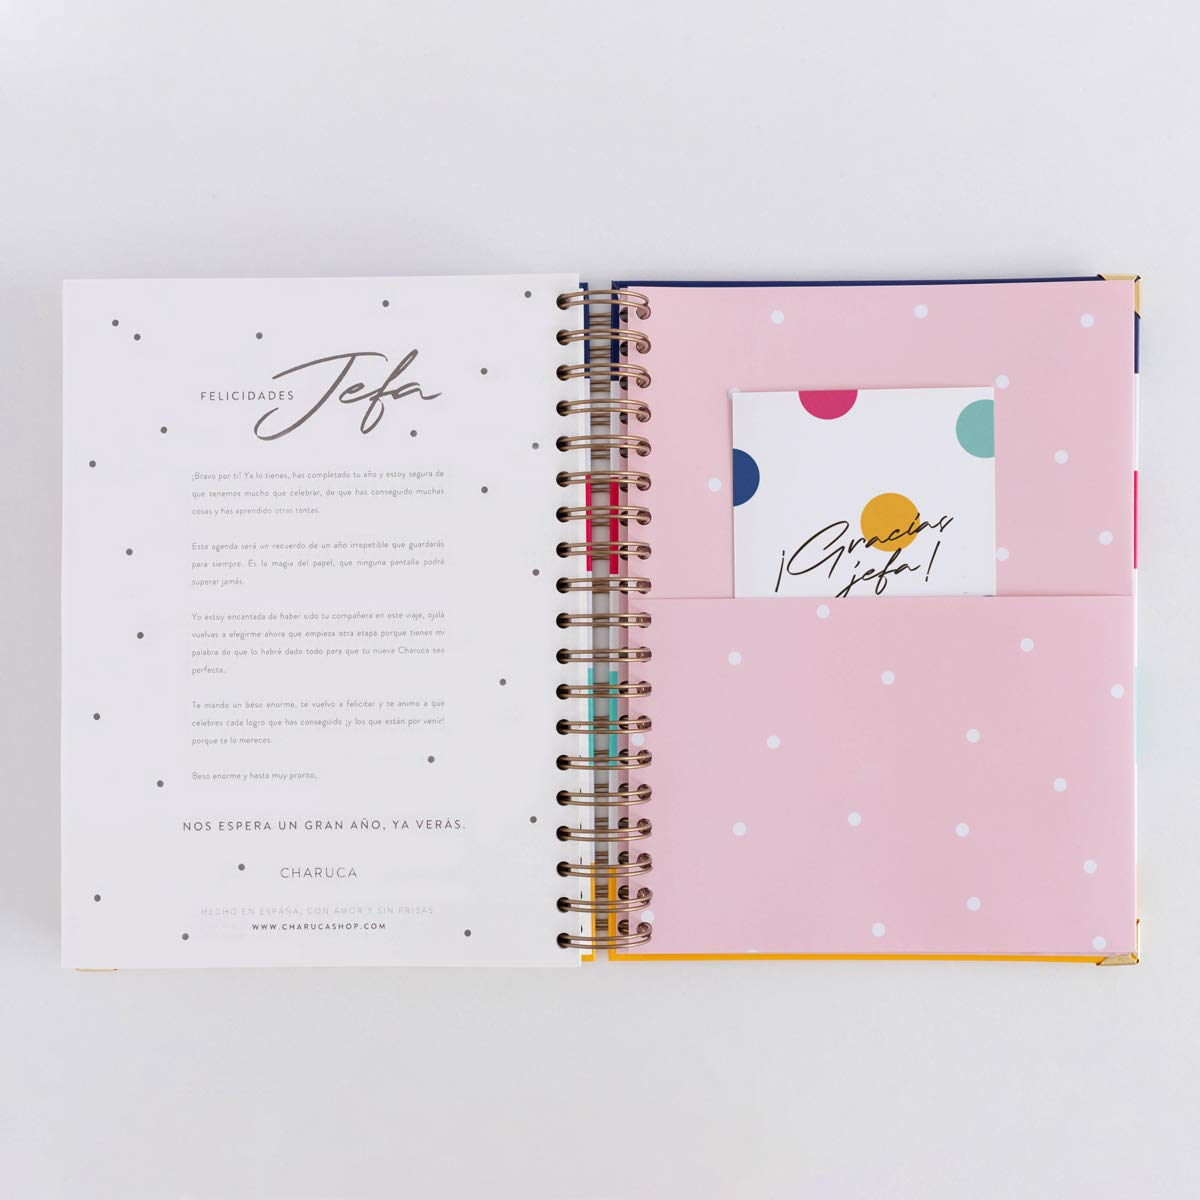 Amazon.com : 19-20 Daily Diary Head Stripes Large : Office ...